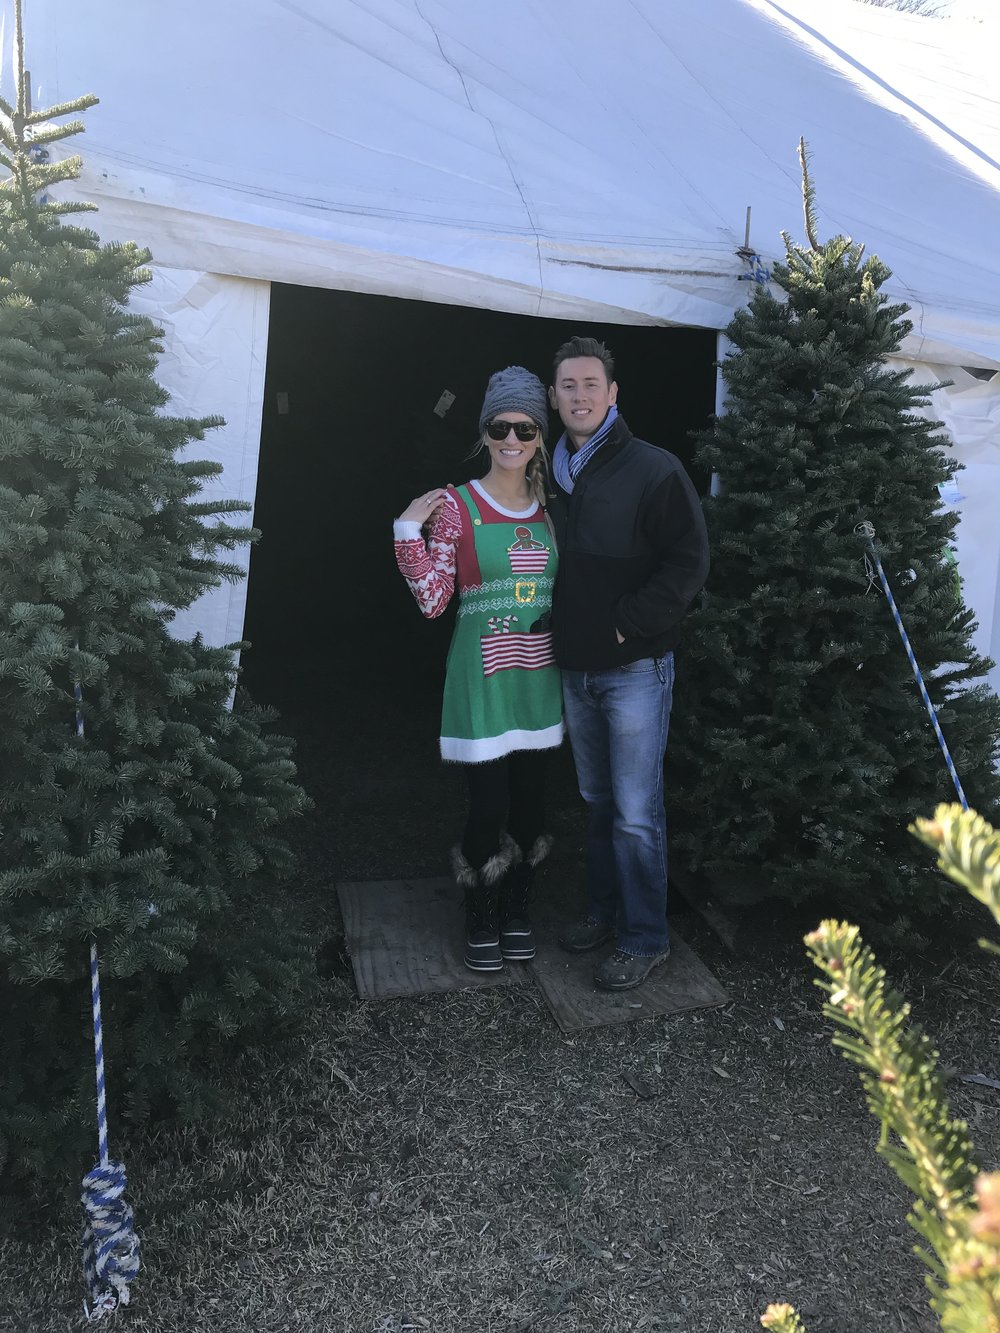 Patton Christmas Trees owners.